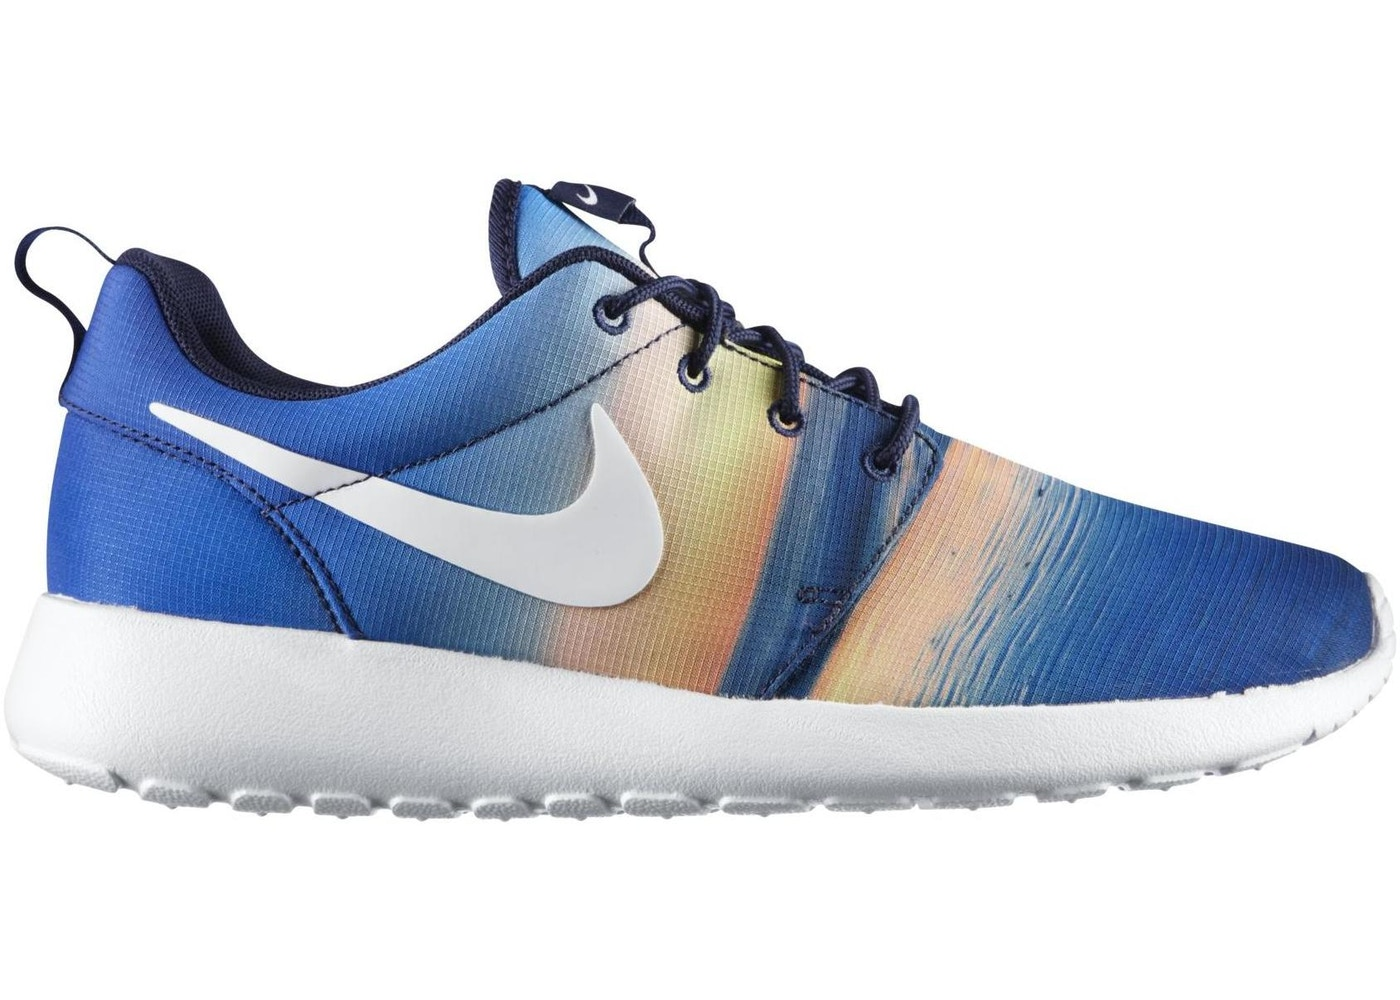 a81c0e8a33eb Nike Roshe Run Sunrise - 511881-415